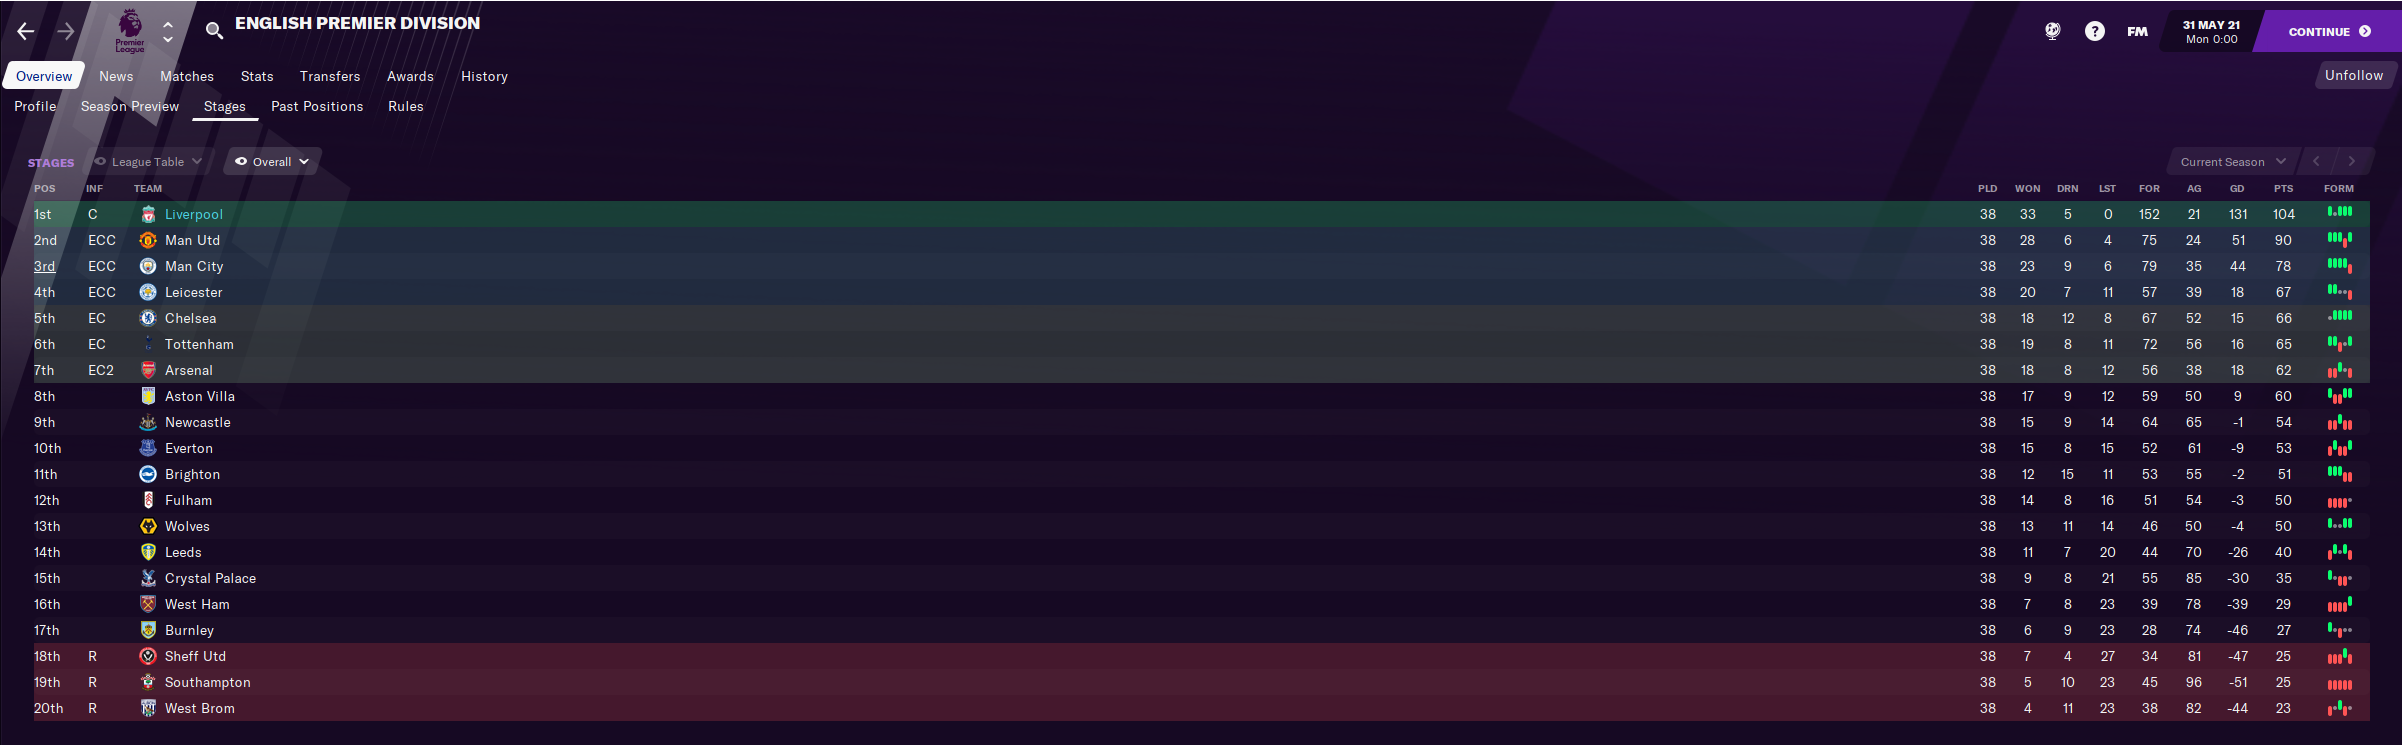 lfc_league_d.png